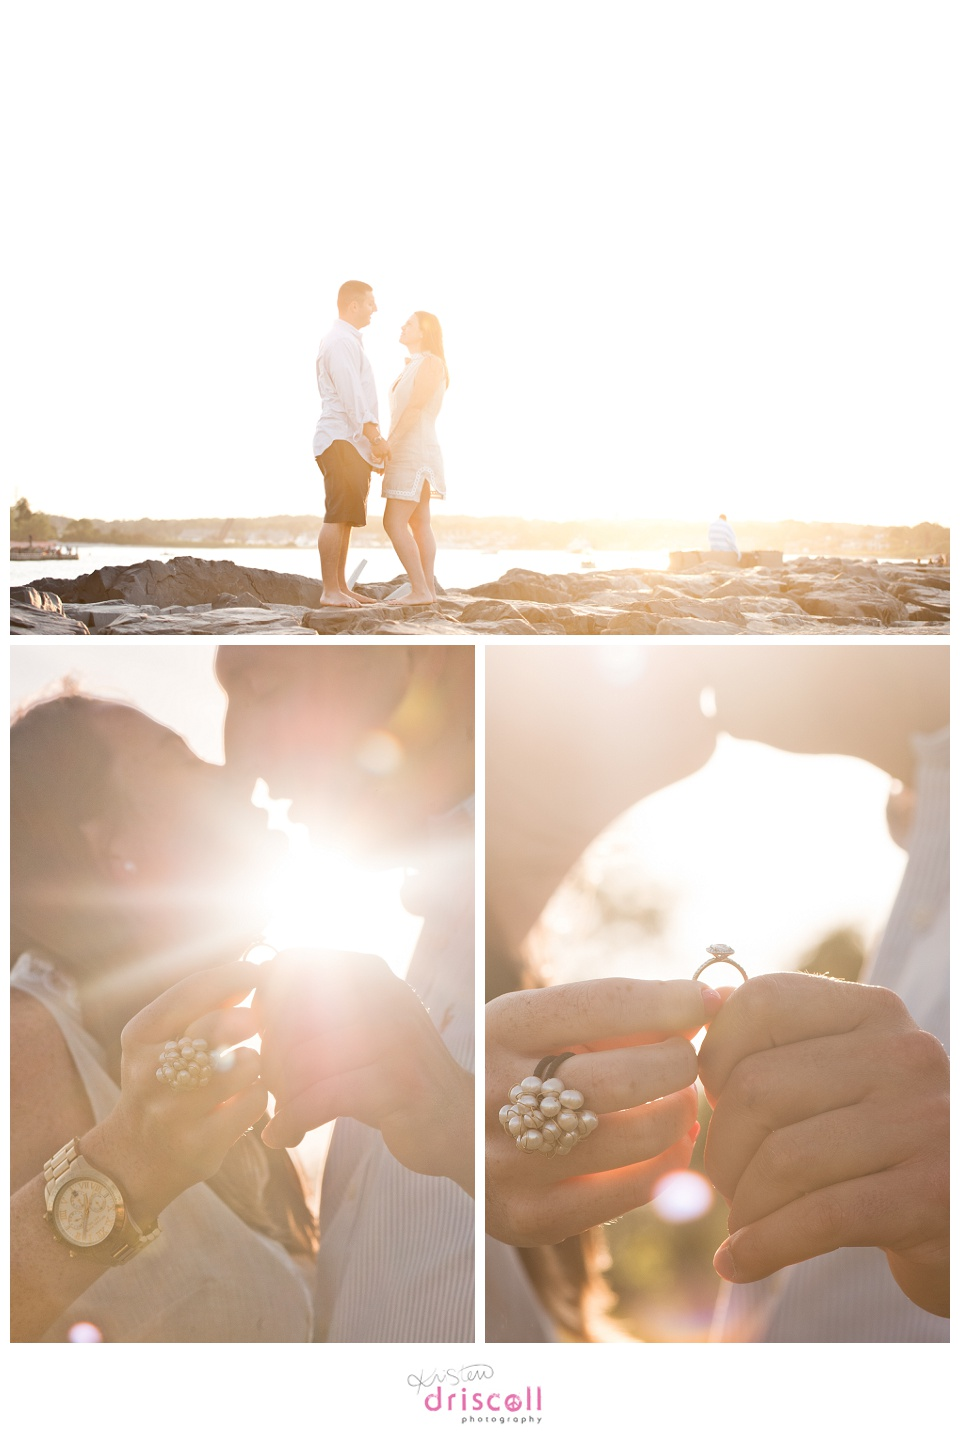 manasquan-engagement-photos-driscoll-20130621-0181